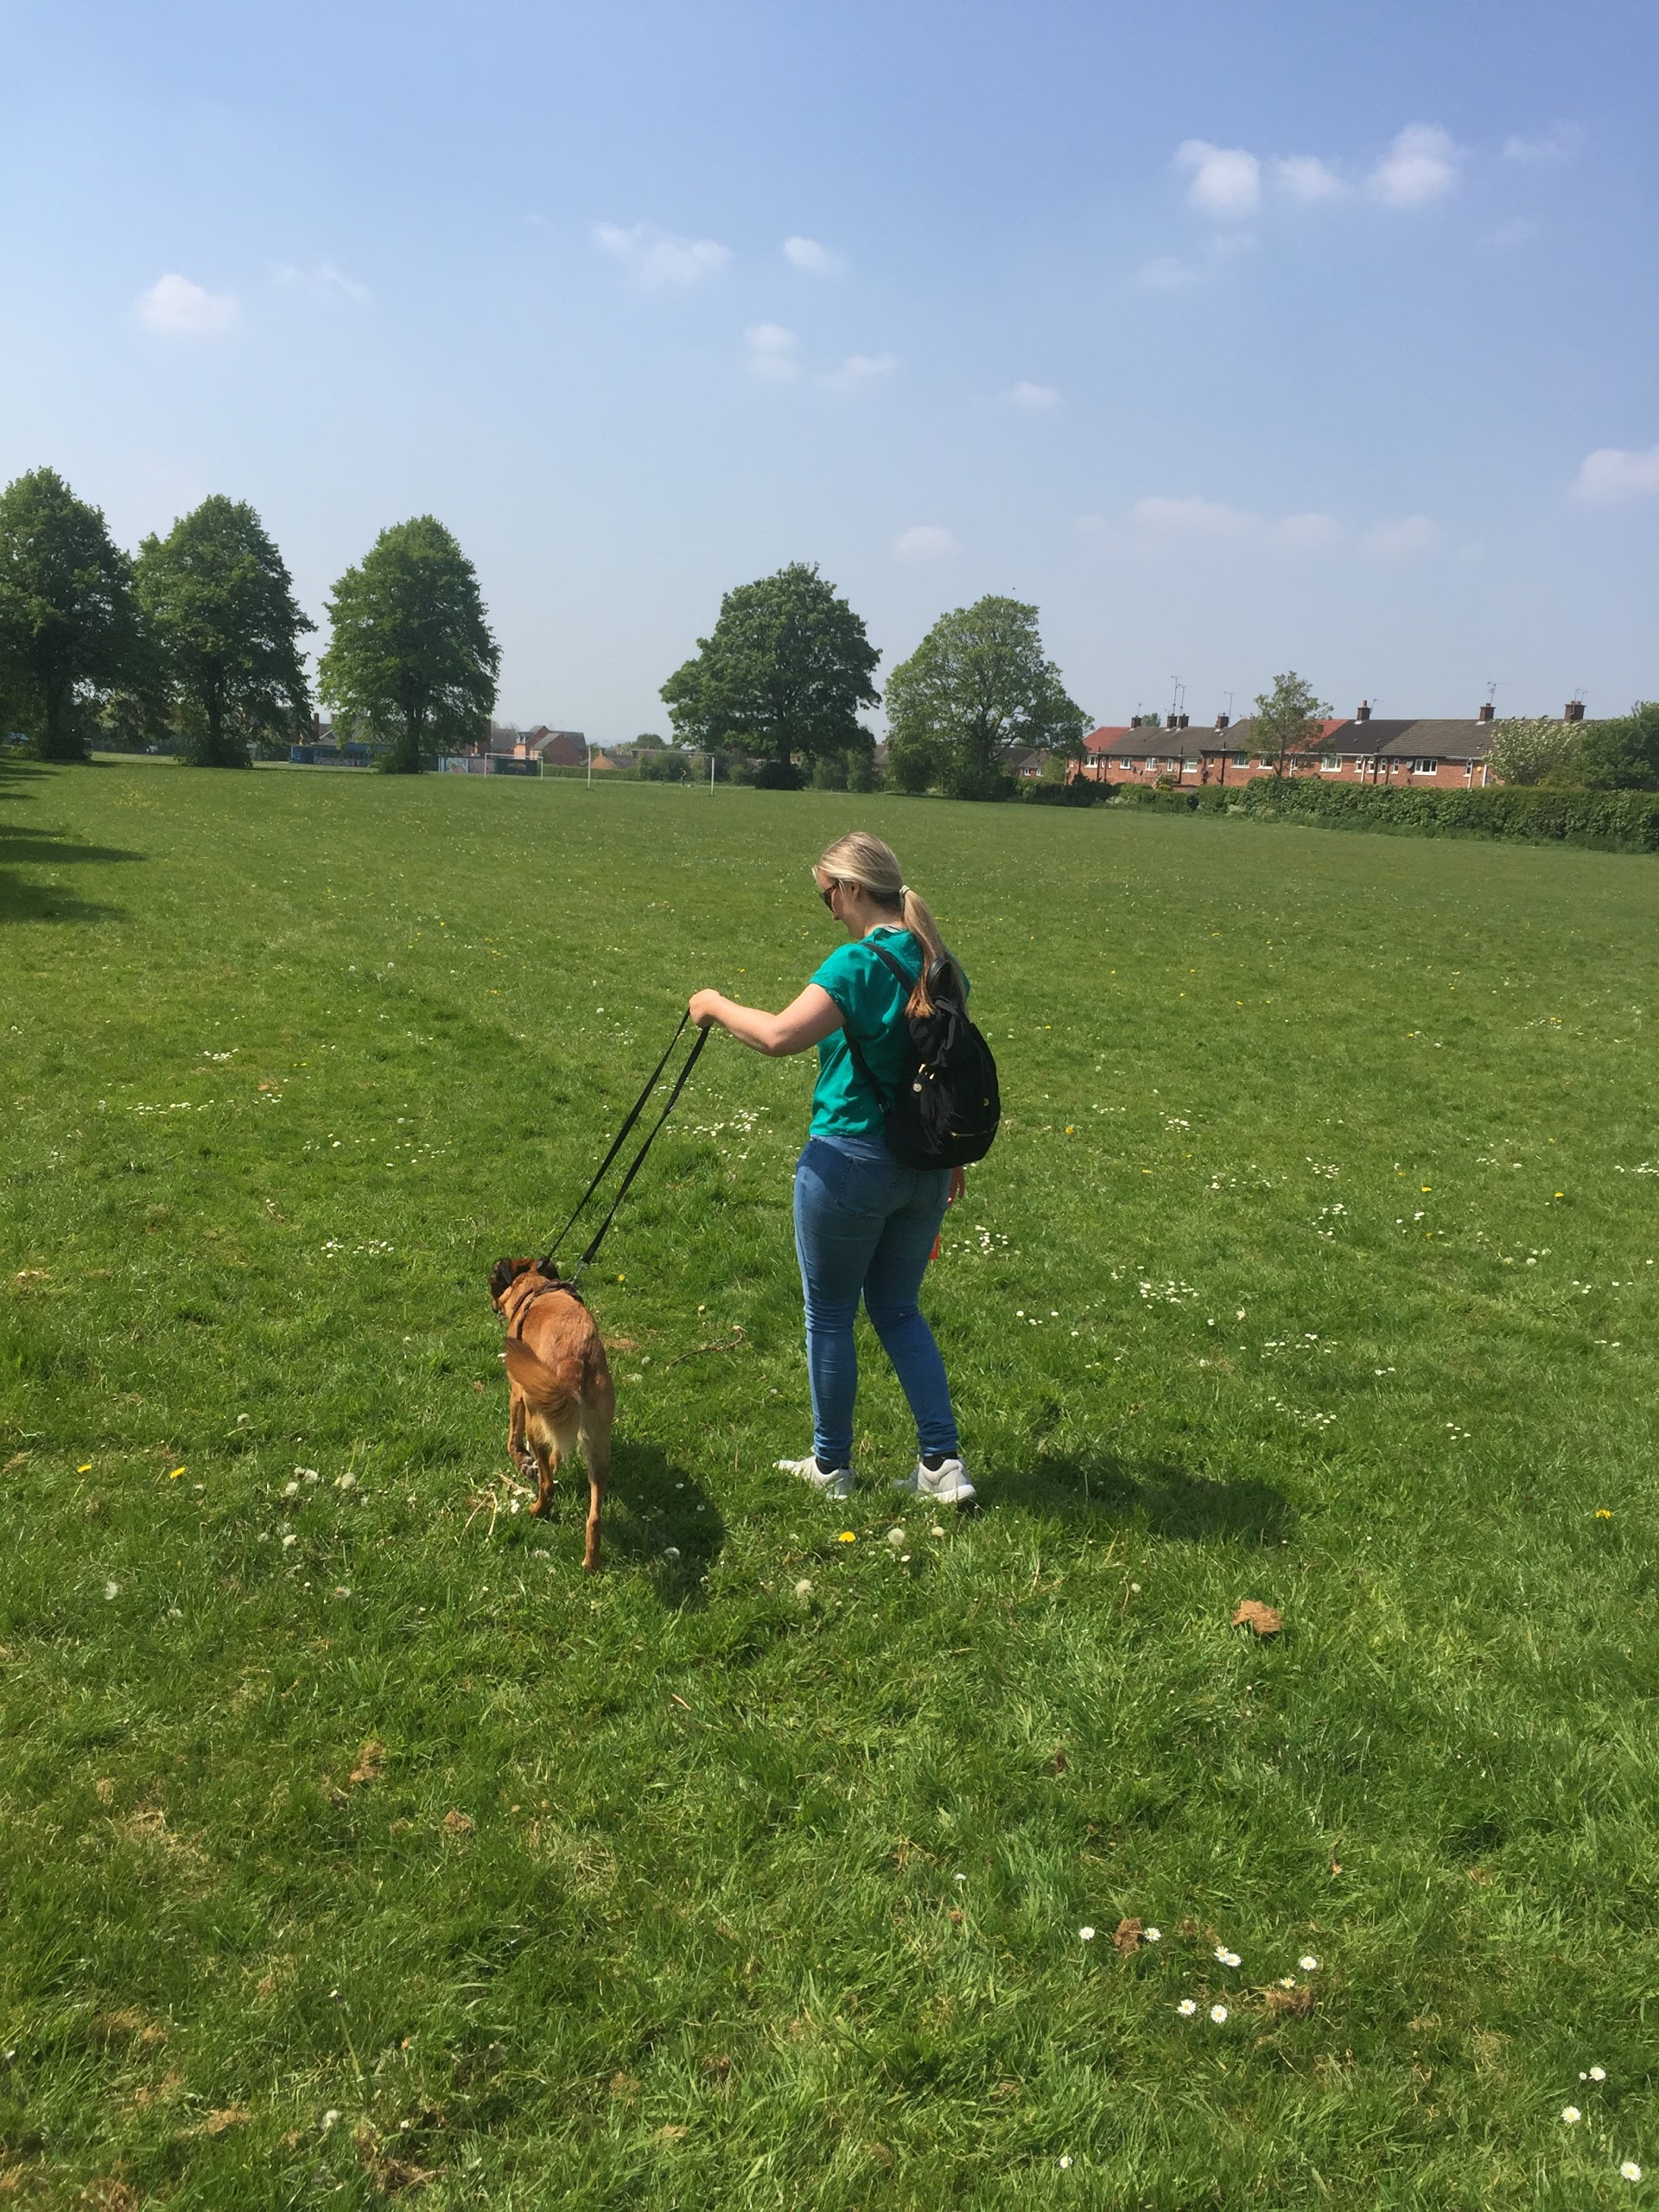 Petmates Chester - Professional Dog Walking & Pet Sitting | 70 Cross Green, Chester CH2 1QR | +44 7709 768986